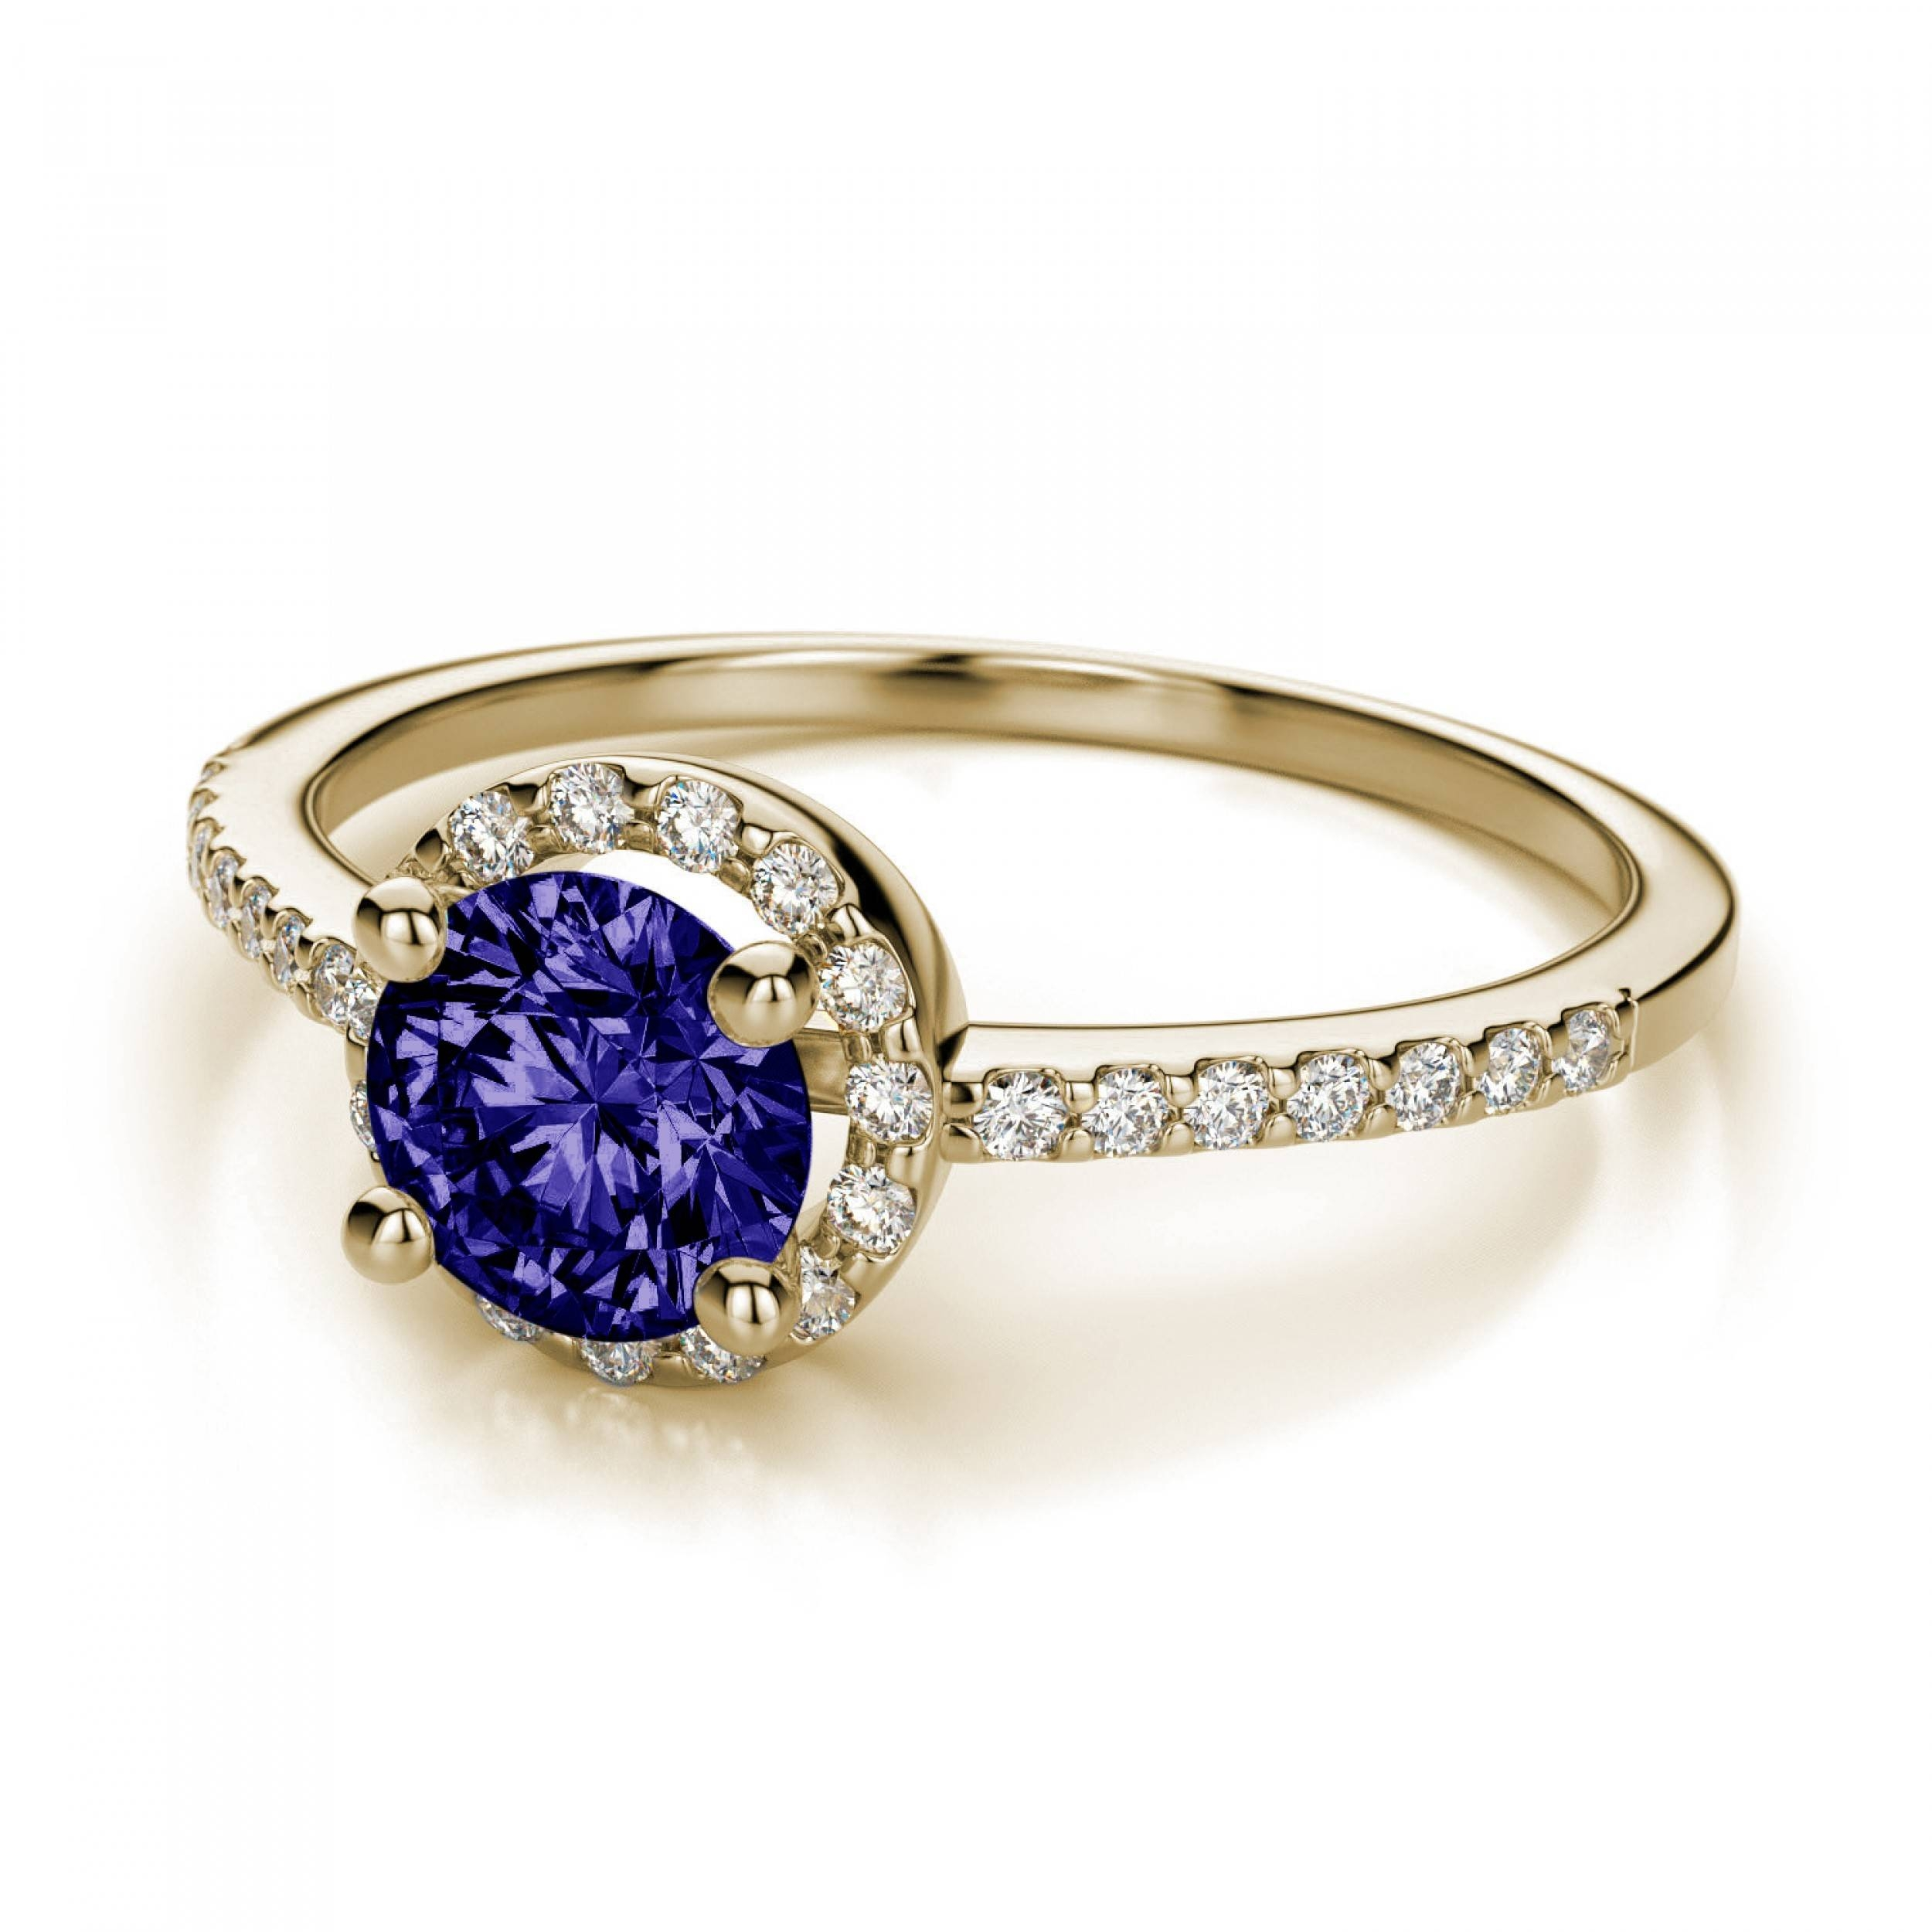 Halo Diamond And 5mm Tanzanite Engagement Ring In 14k Yellow Gold With Regard To Diamond Tanzanite Engagement Rings (View 5 of 15)